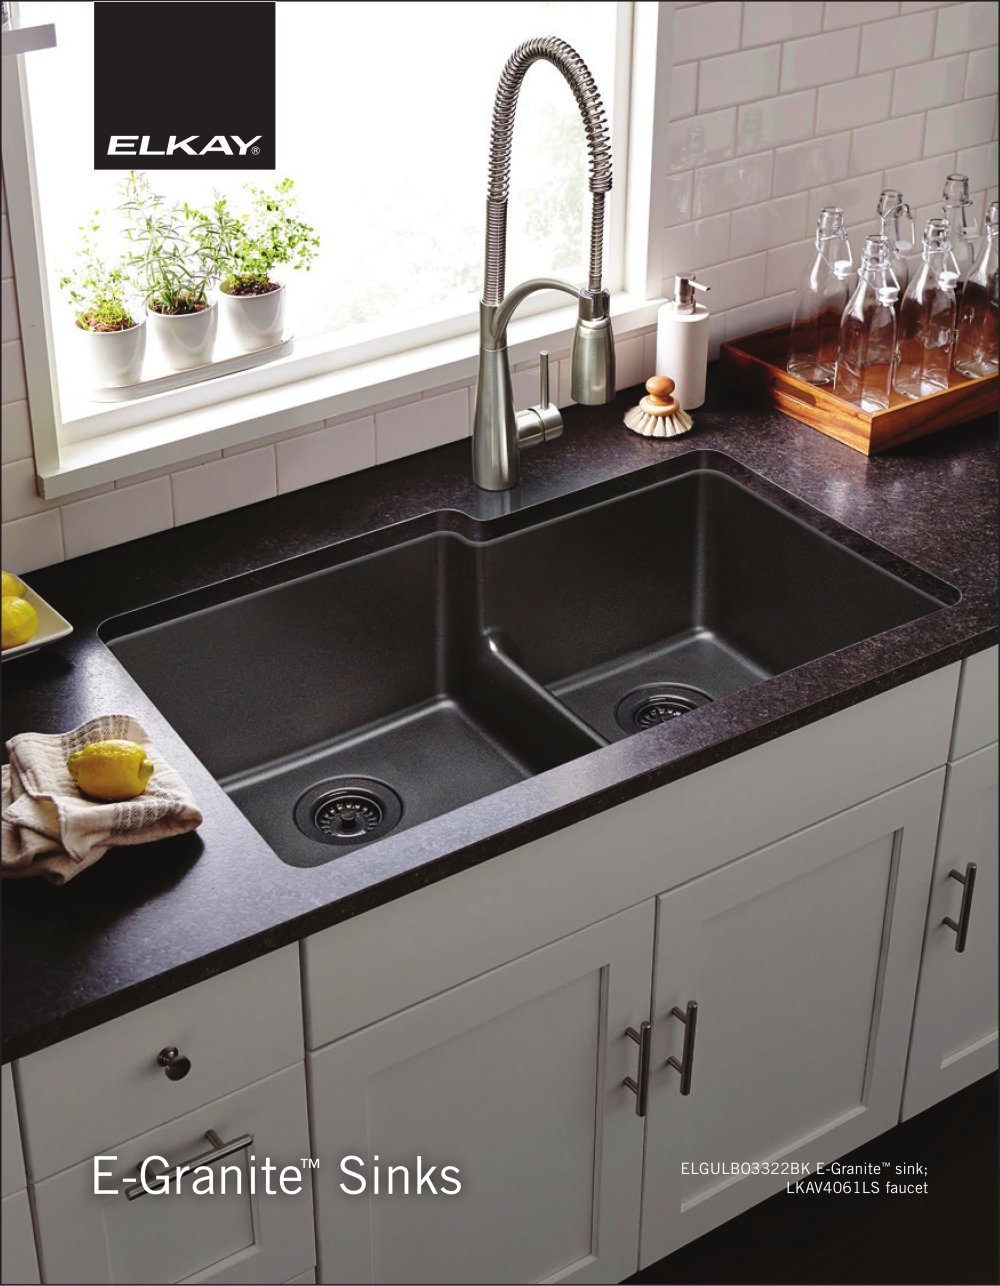 Delightful E Granite ™ Sinks   1 / 4 Pages